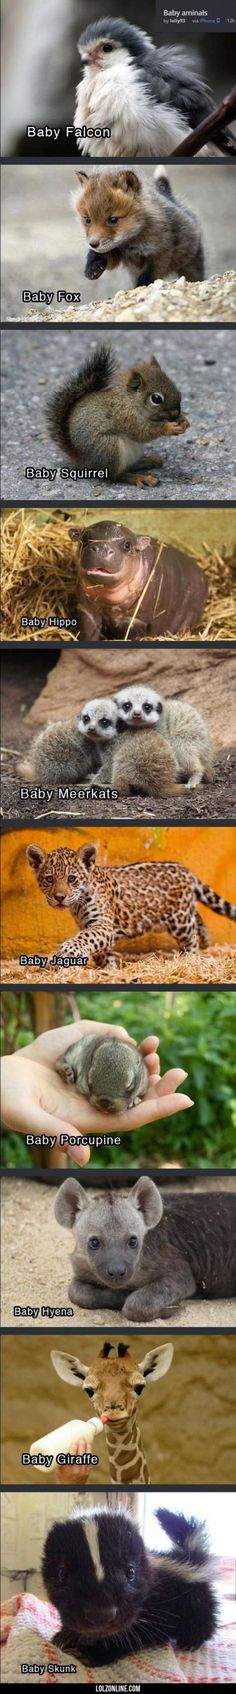 This pic is so cute! I can't believe how adorable baby animals can be! The Animals, Cute Little Animals, Cute Funny Animals, Cute Dogs, Cute Babies, Small Animals, Cutest Animals, Wild Animals, Strange Animals